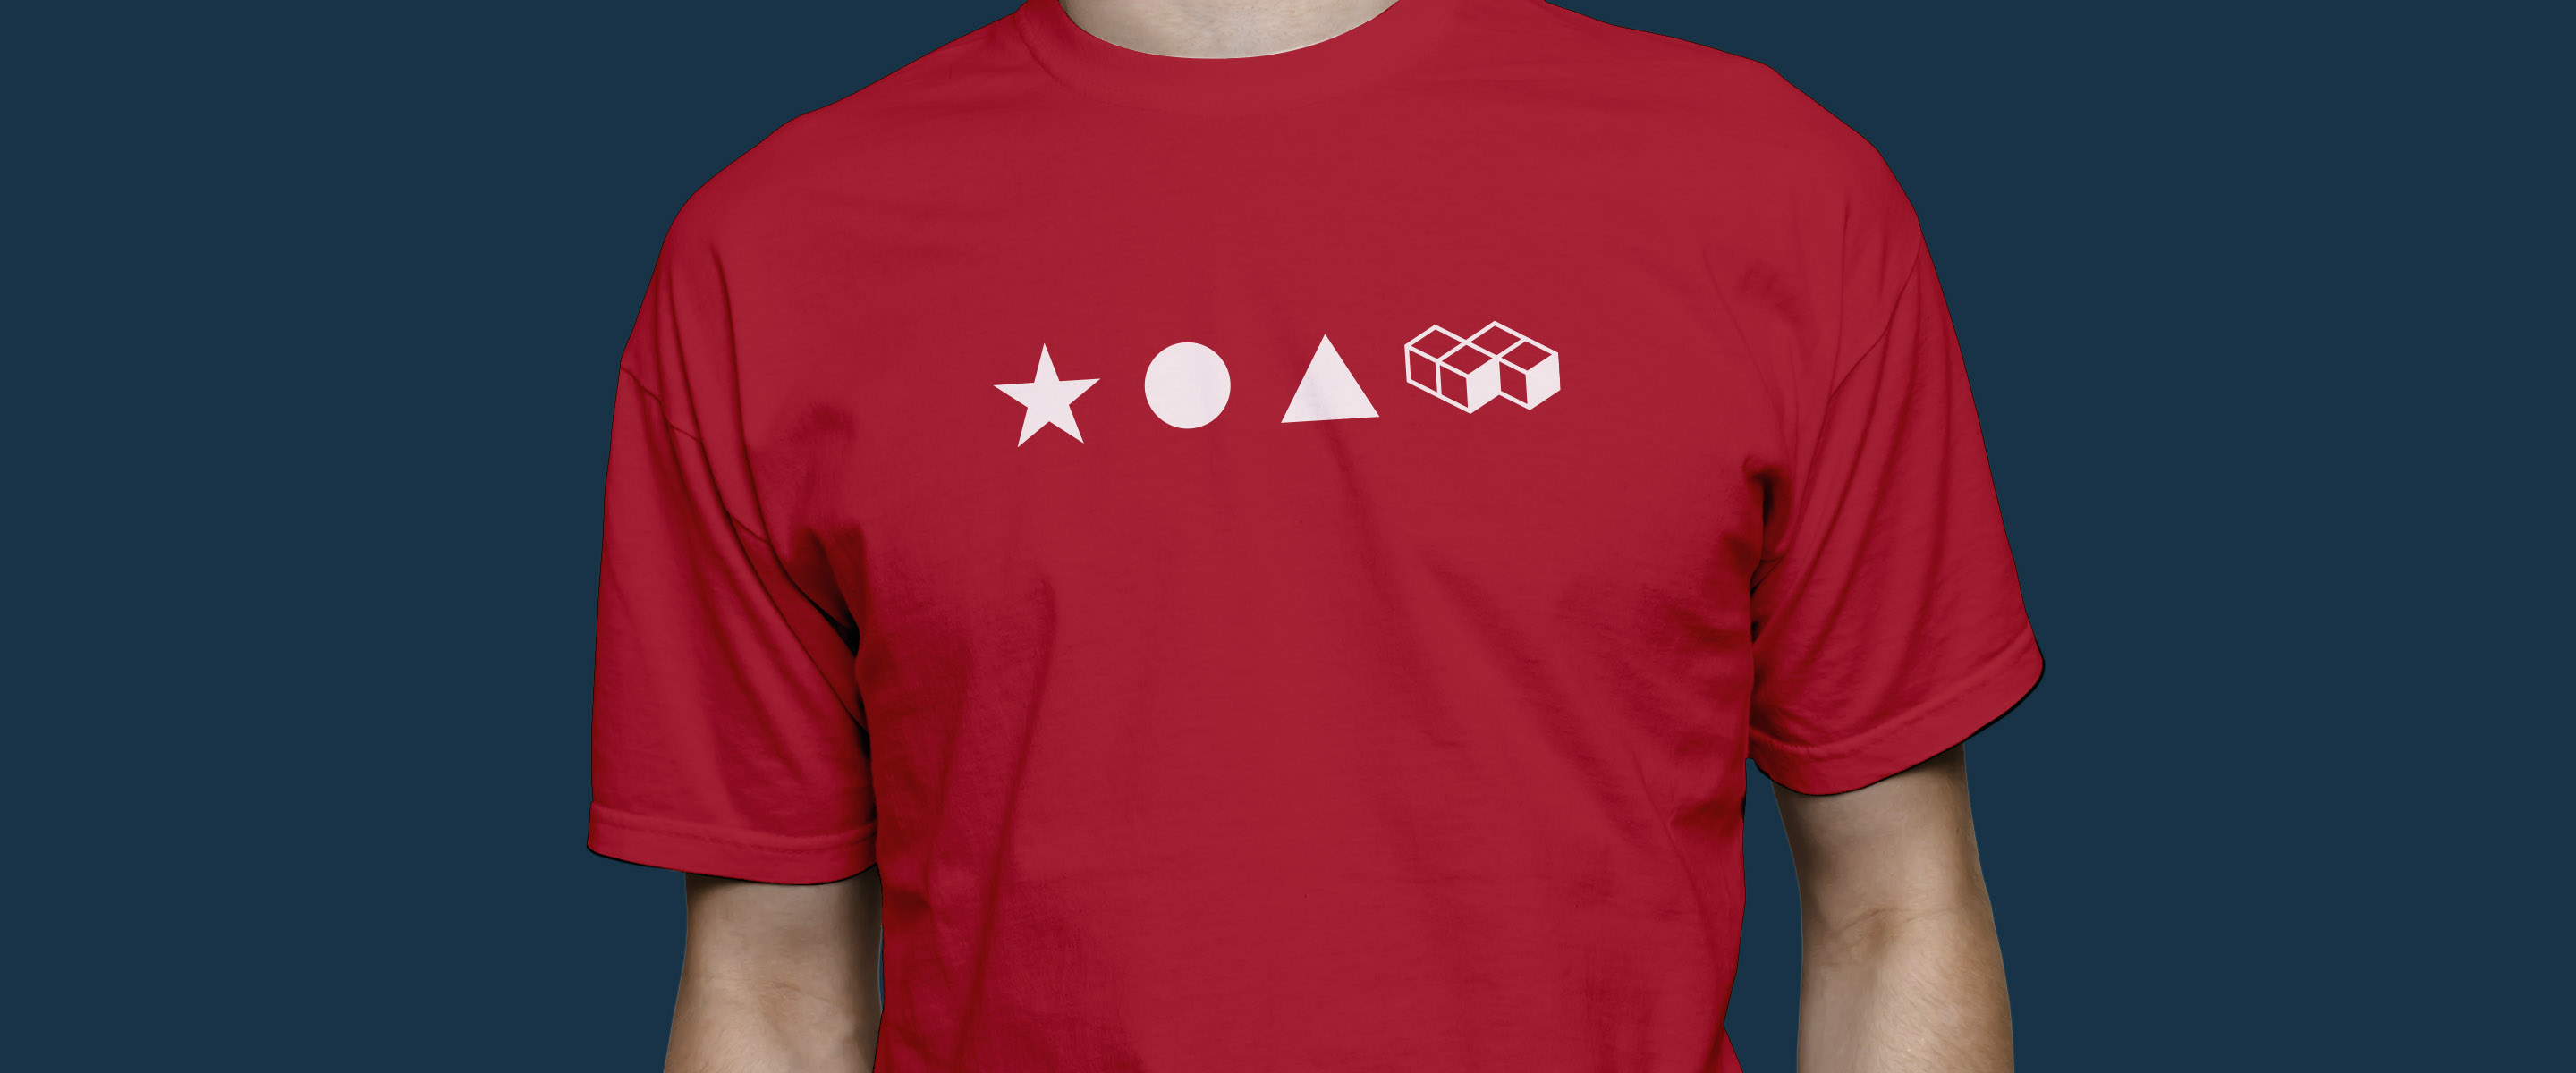 Try Redis, Get a Limited Edition T-Shirt